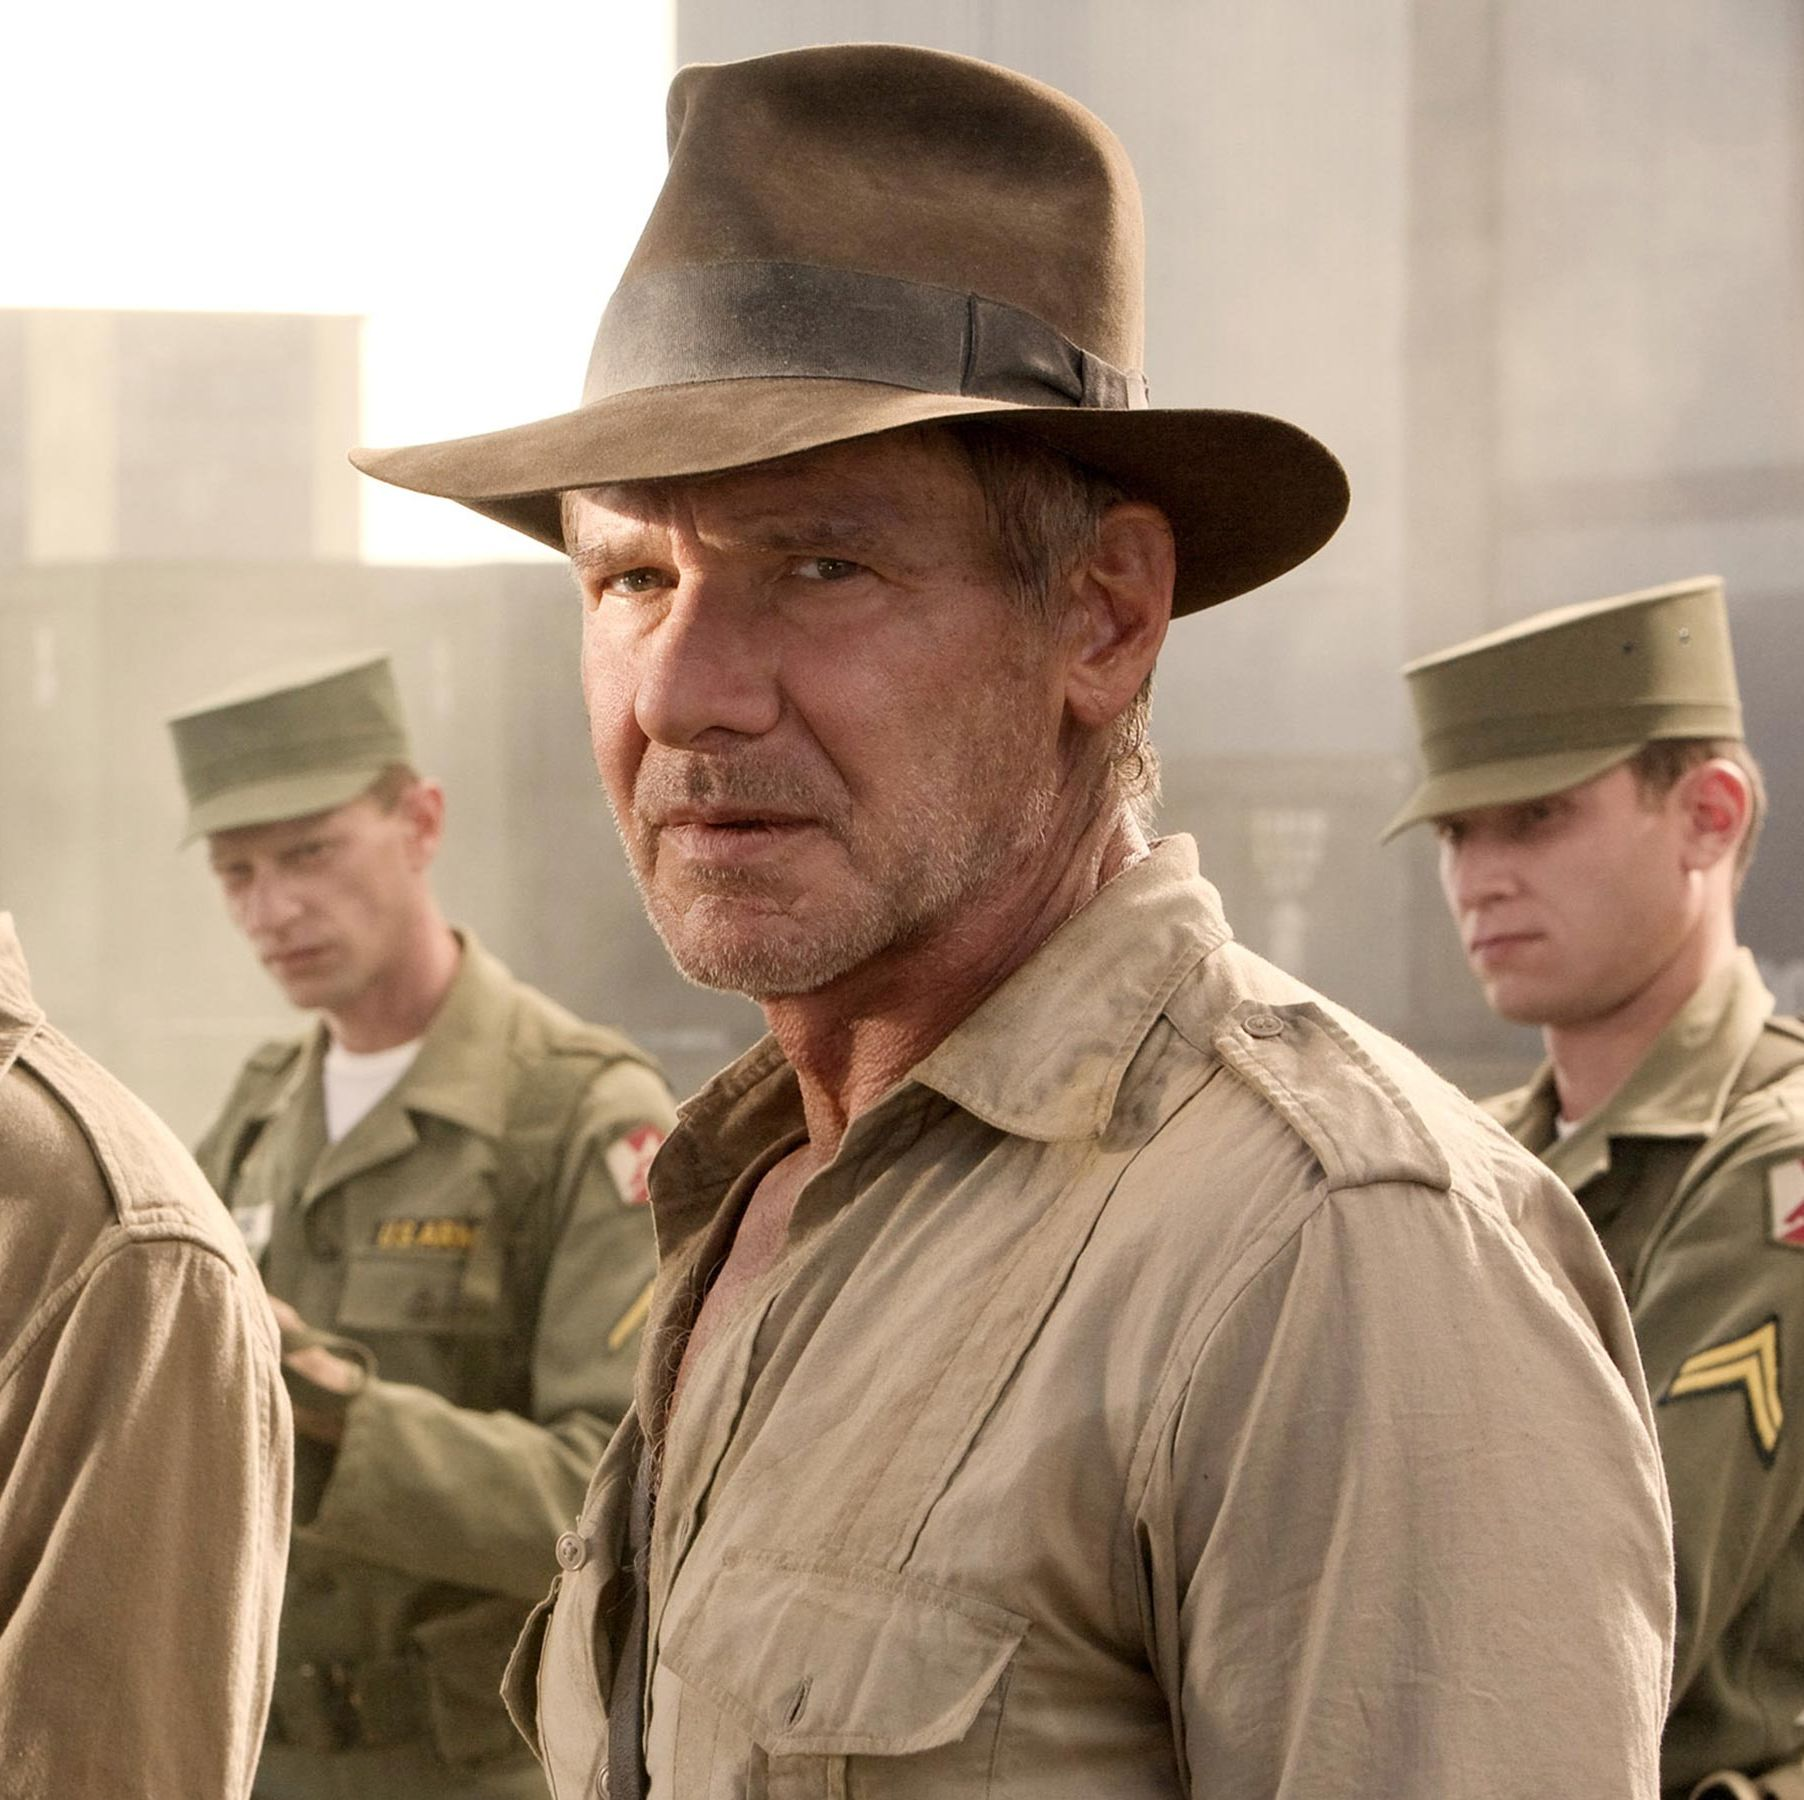 Indiana Jones star Harrison Ford addresses being replaced in future sequels